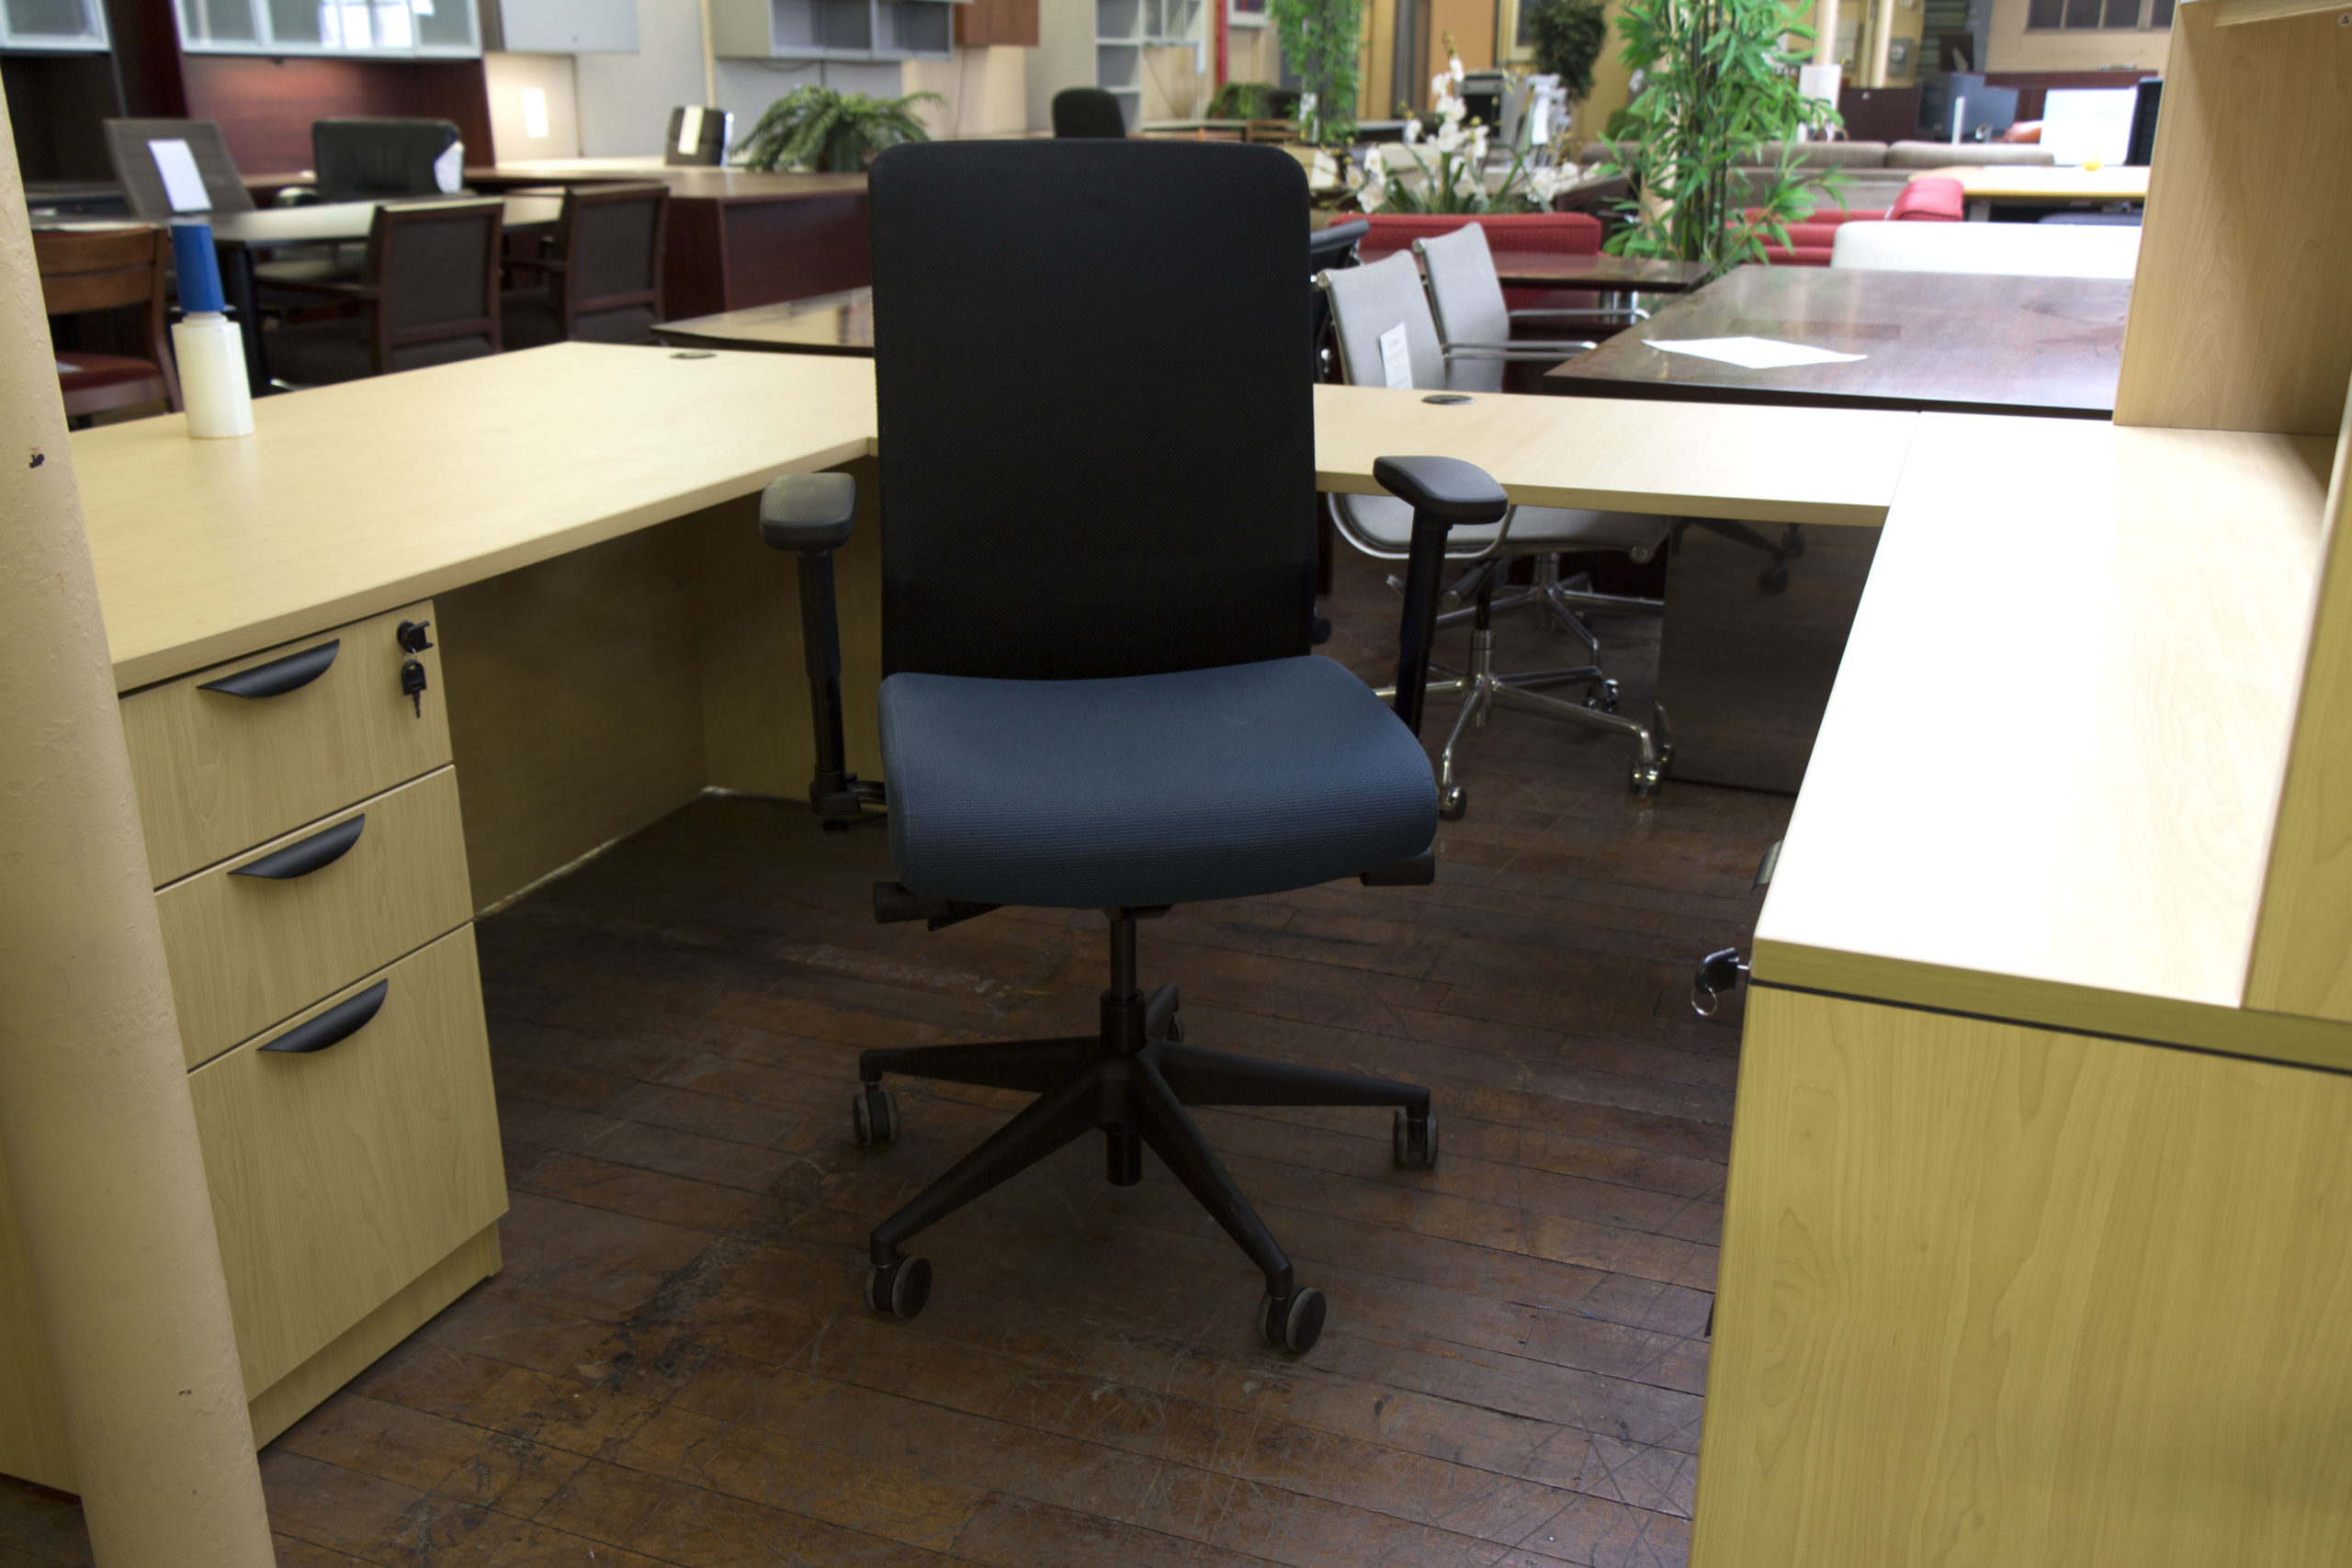 peartreeofficefurniture_peartreeofficefurniture_mg_5530.jpg